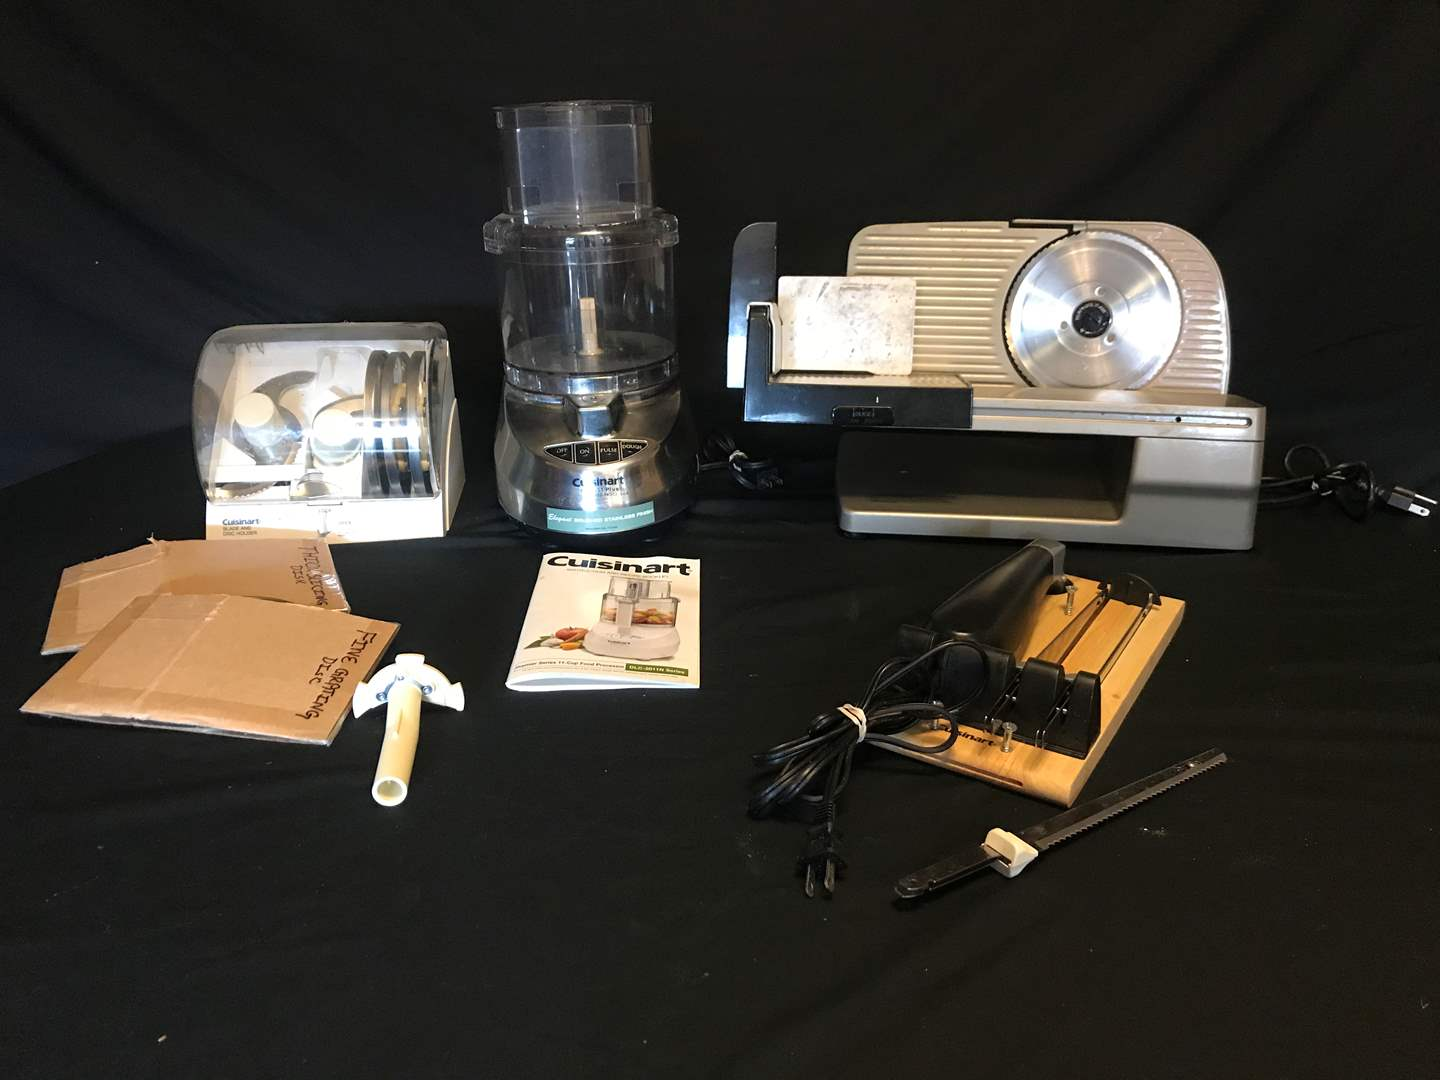 Lot # 64 - Chef's Choice 615 Slicer, Cuisinart Food Processor & Electric Knife (main image)